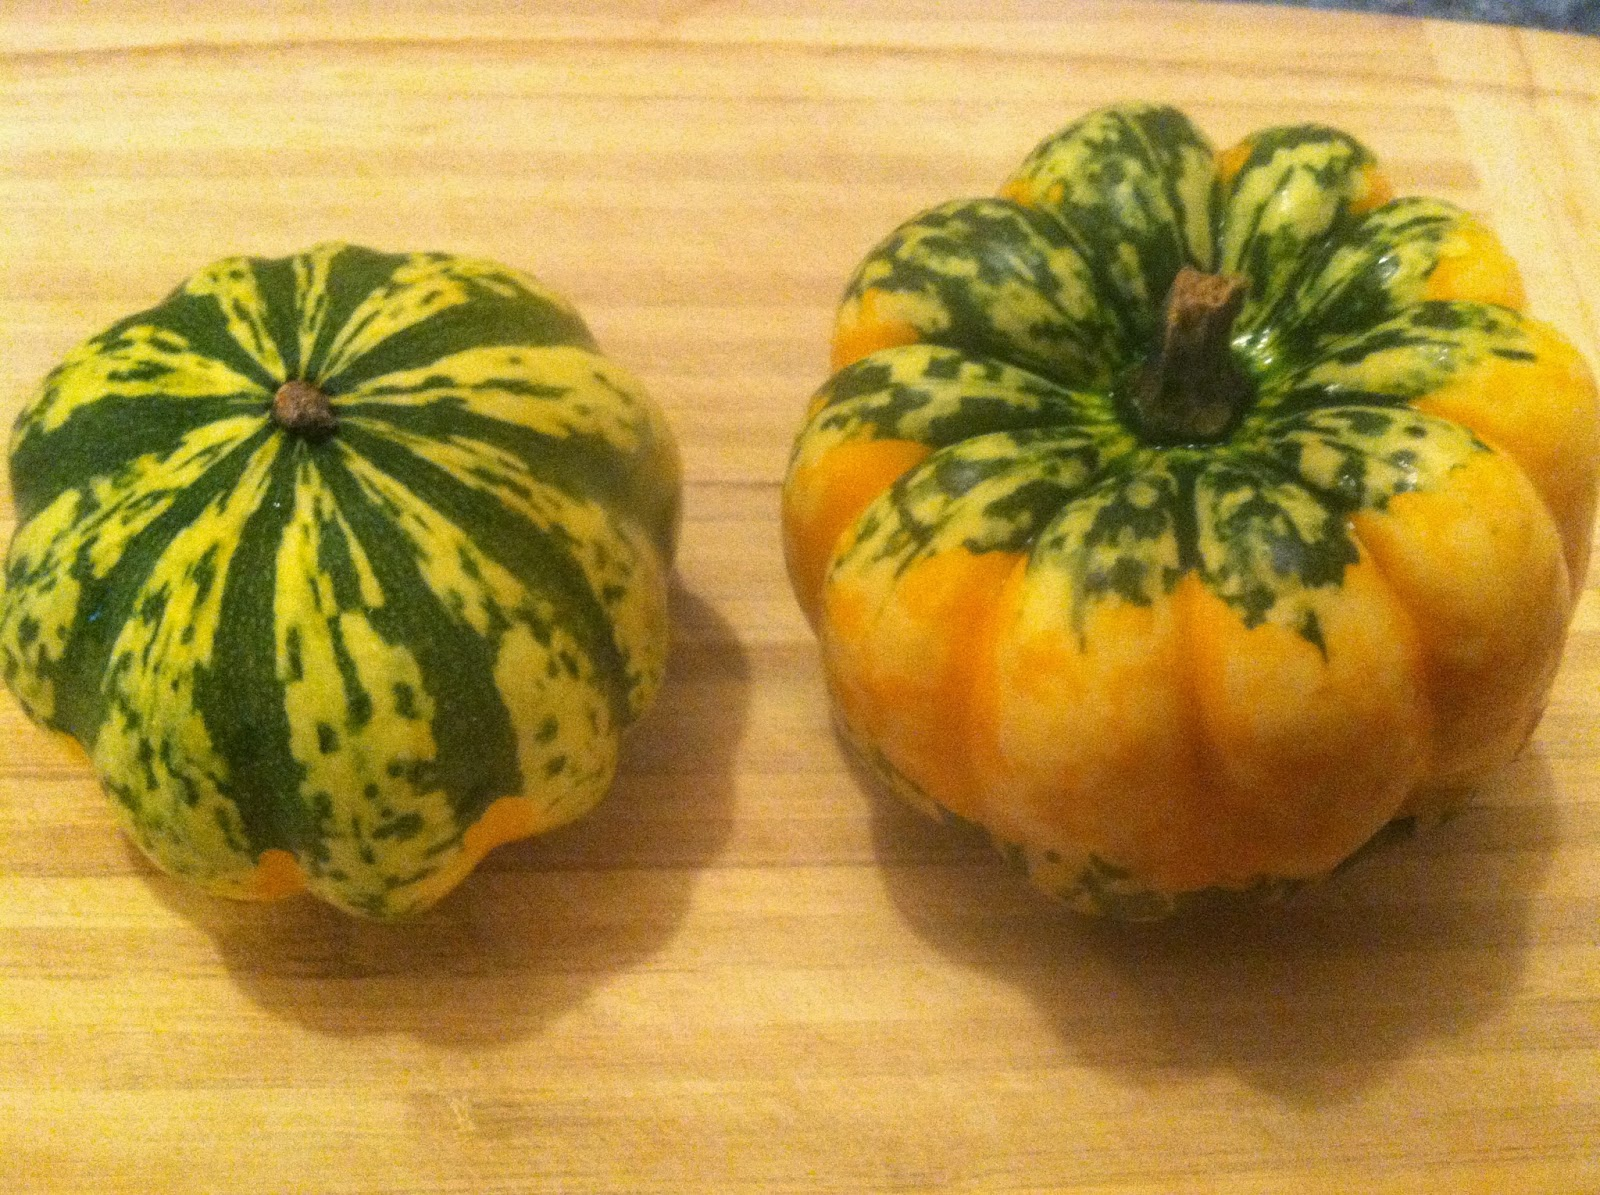 carnival squash for a linguine dish.